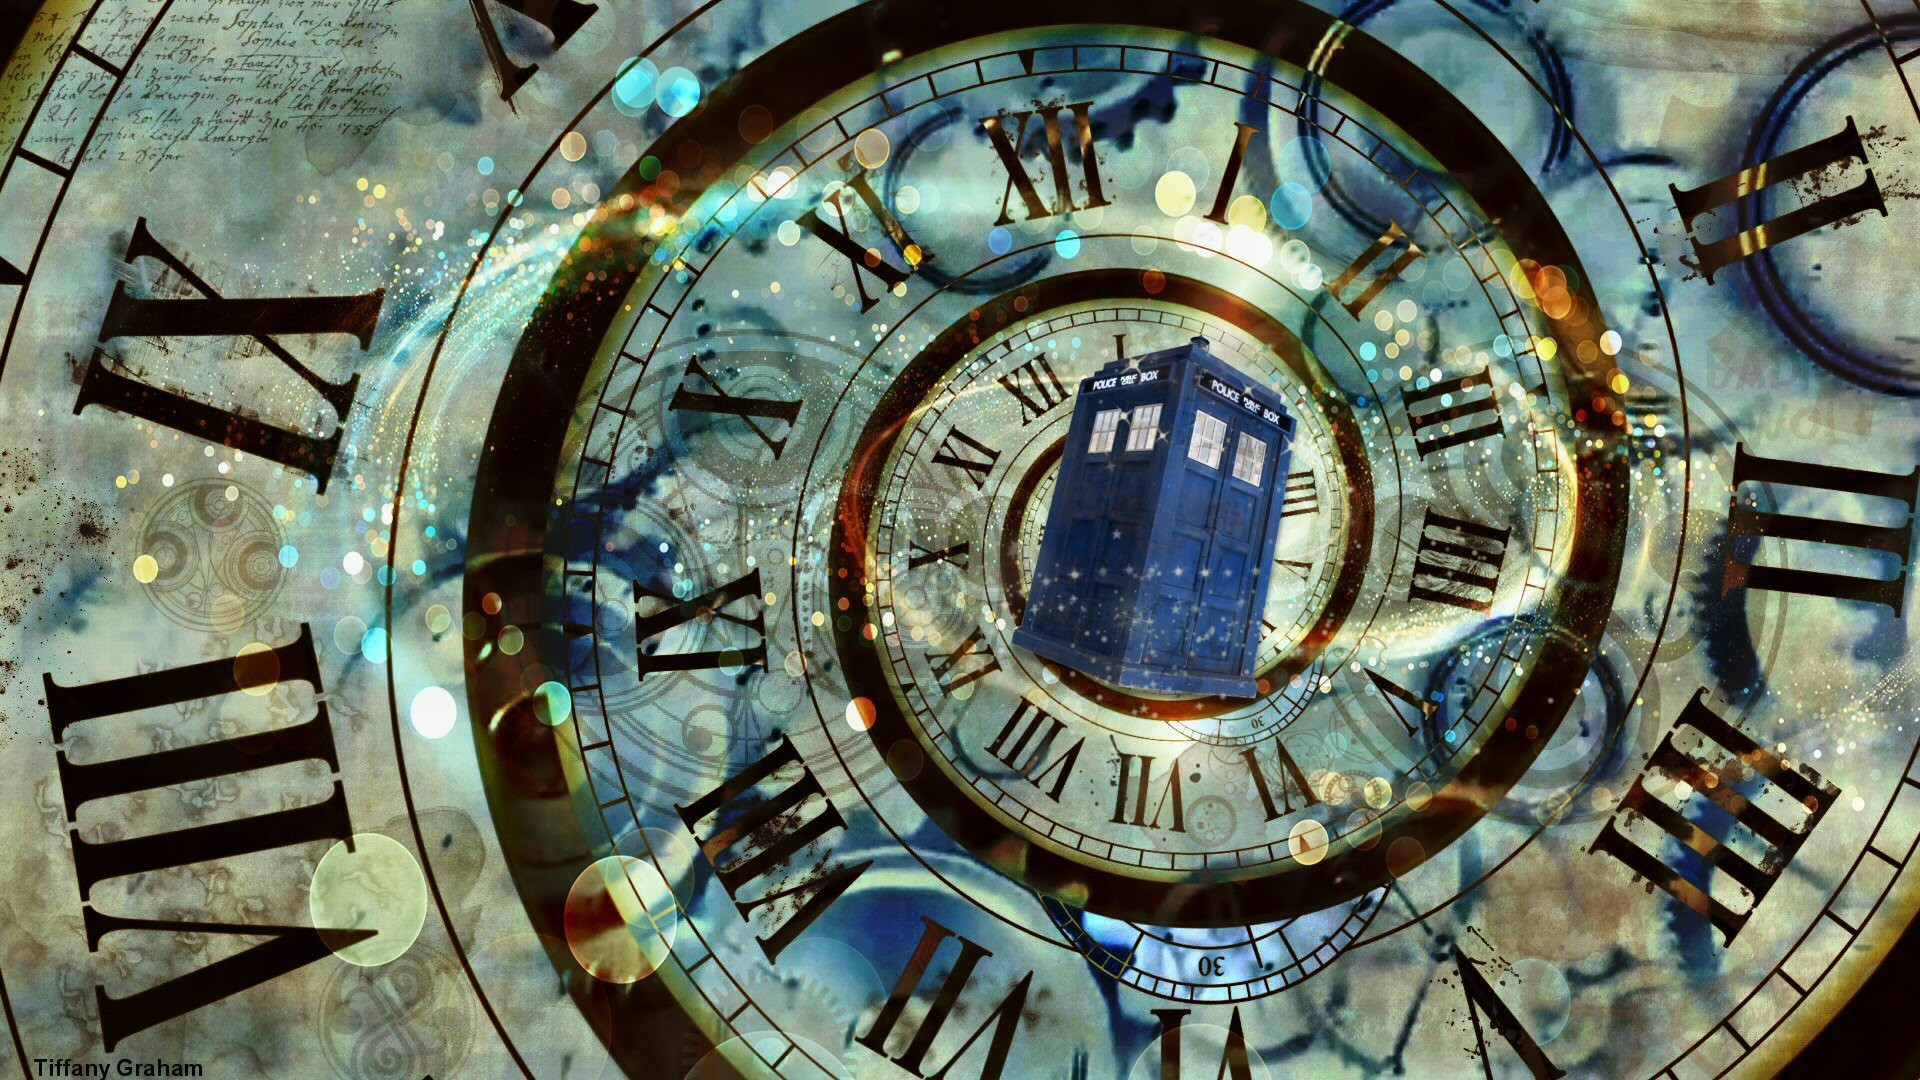 Doctor Who Tardis Wallpaper in HQ Resolution